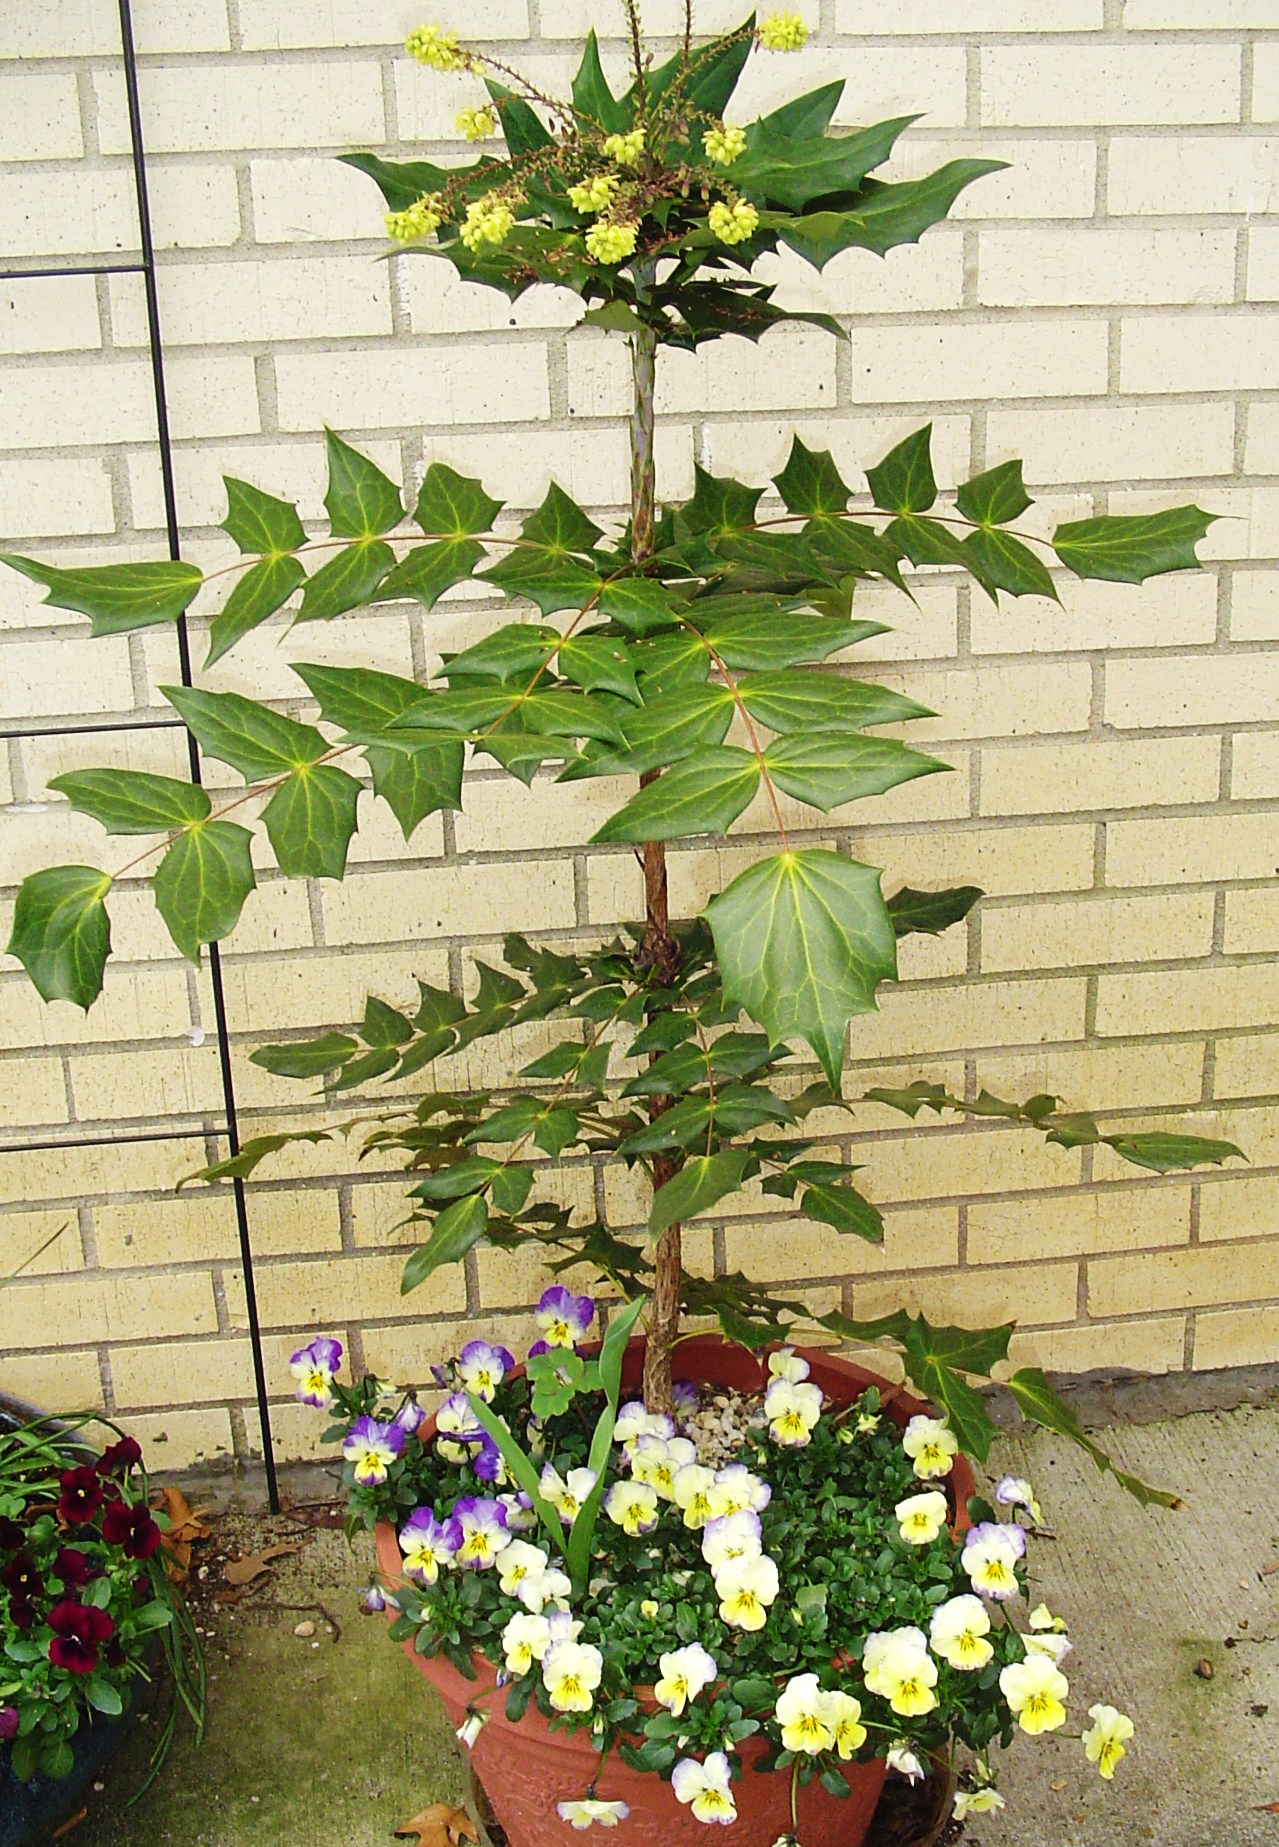 Potted Mahonia blooming on the patio.